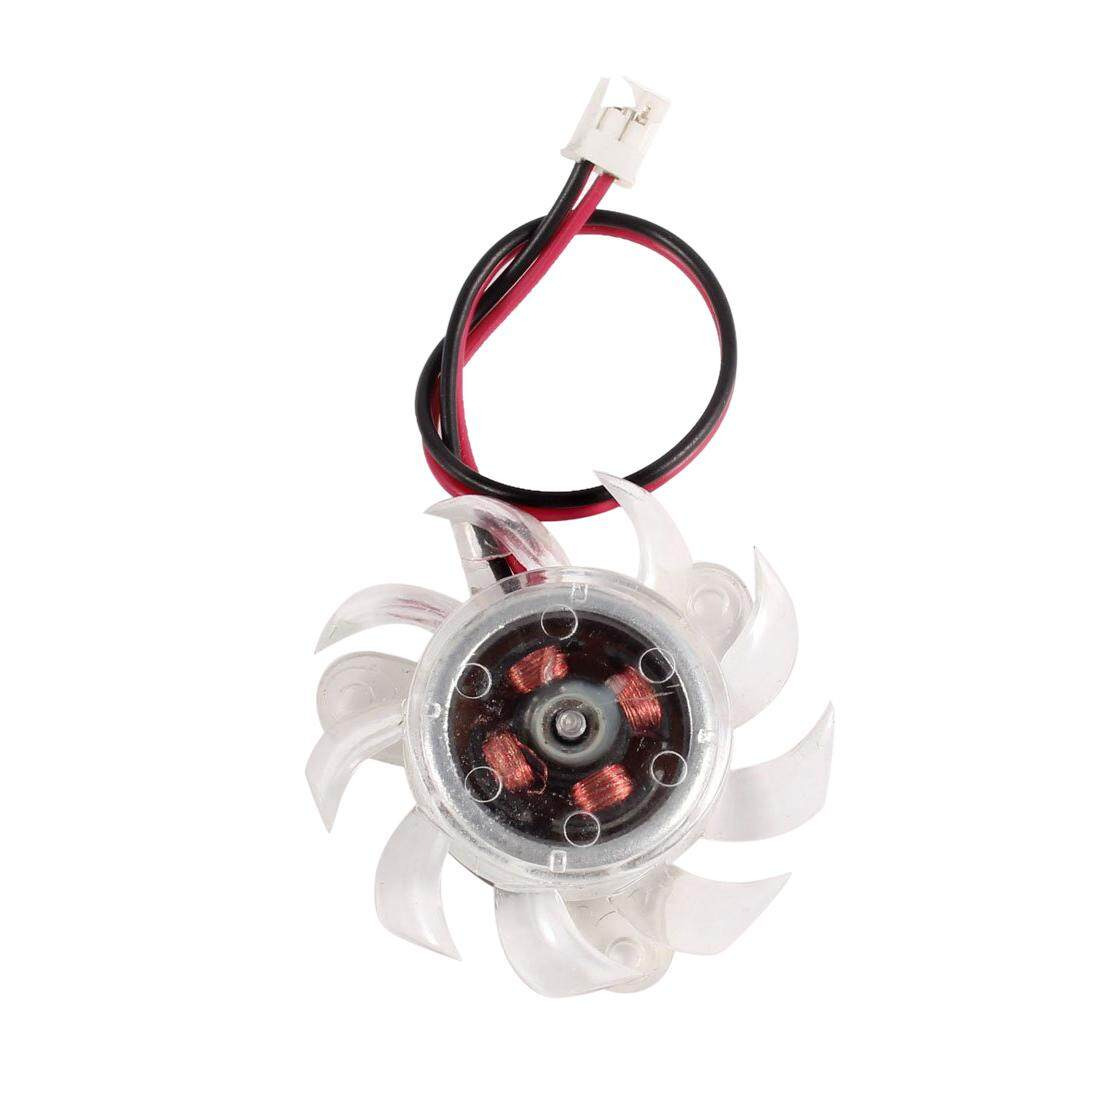 35mm Clear Plastic VGA Graphic Card Cooling Fan Cooler for PC Computer - intl